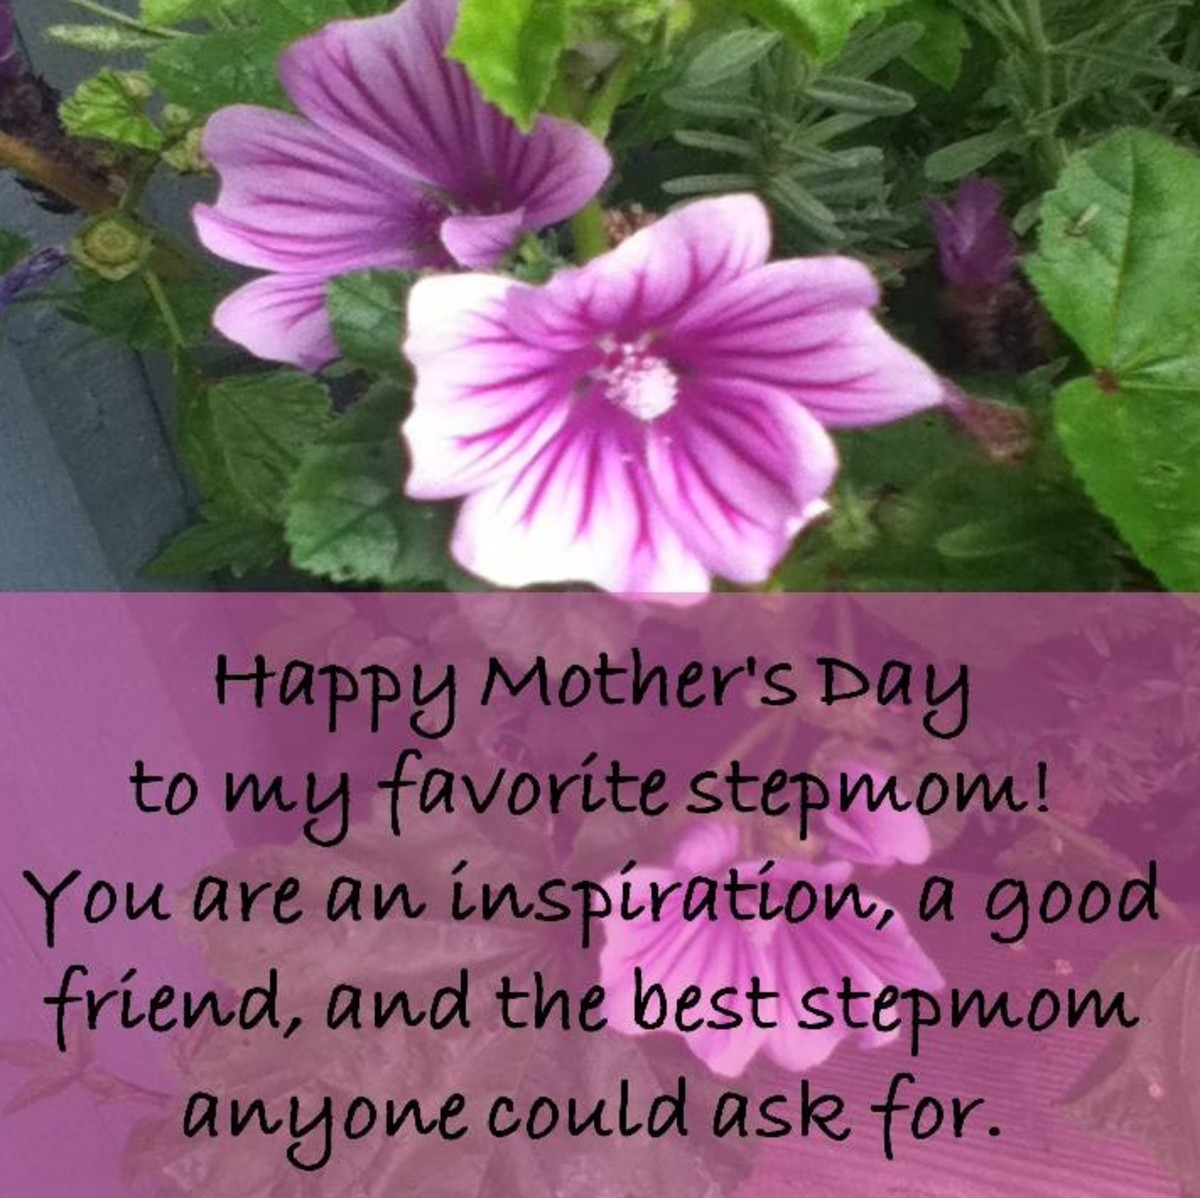 Card Greetings and Gift Ideas for Your Stepmother on Mother's Day